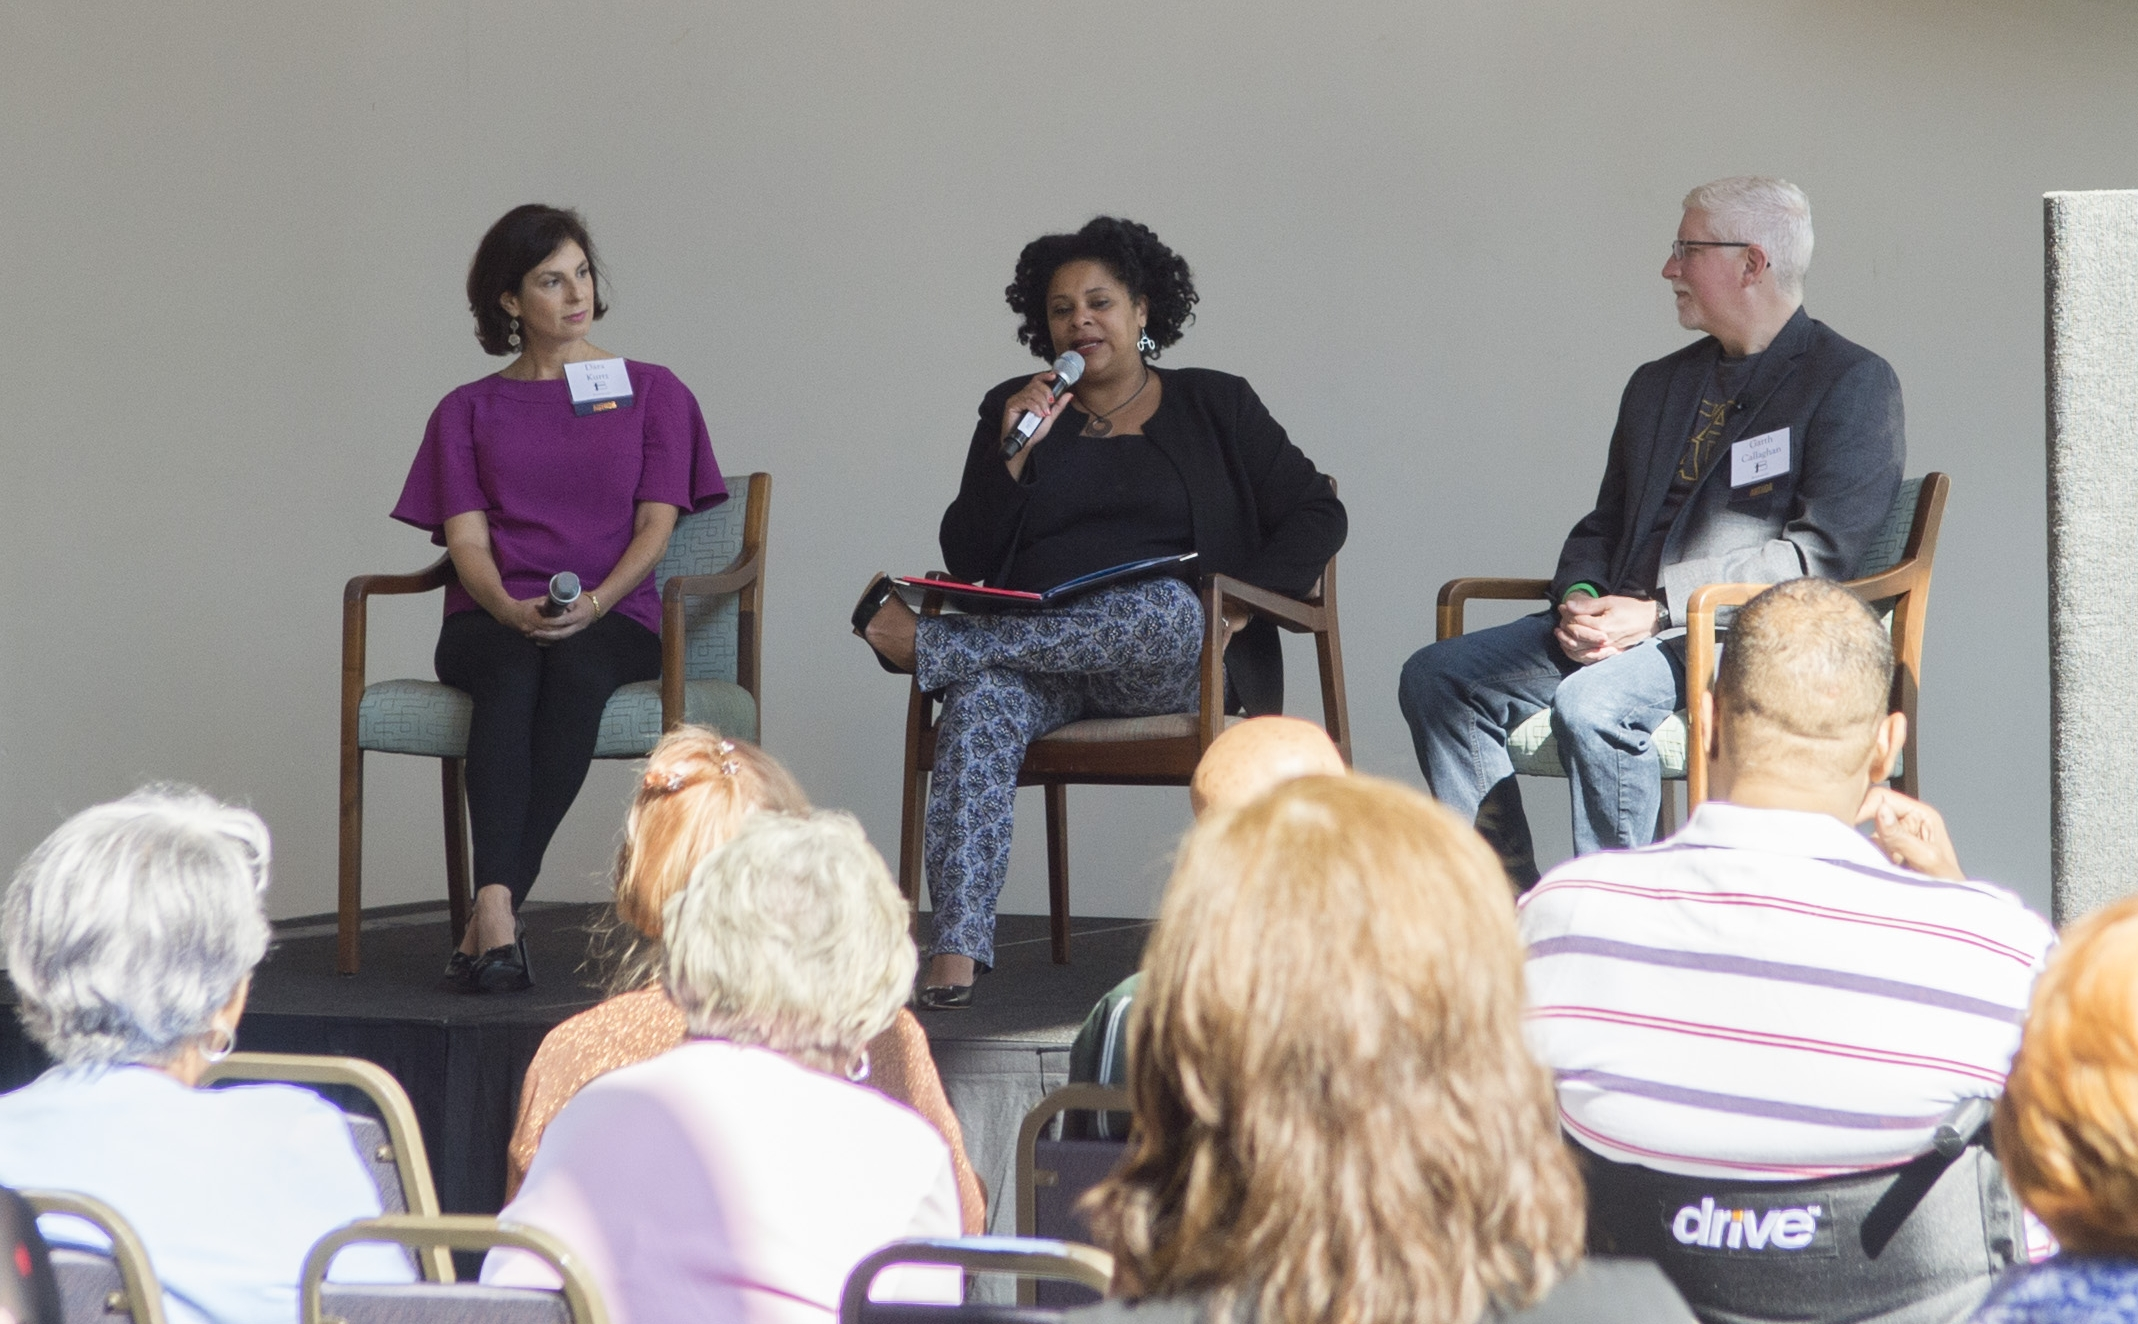 Dr. Karen M.Winkfield,MD, PhD,moderates a panel discussion with Dara Kurtz and Garth Callaghan, September 2017